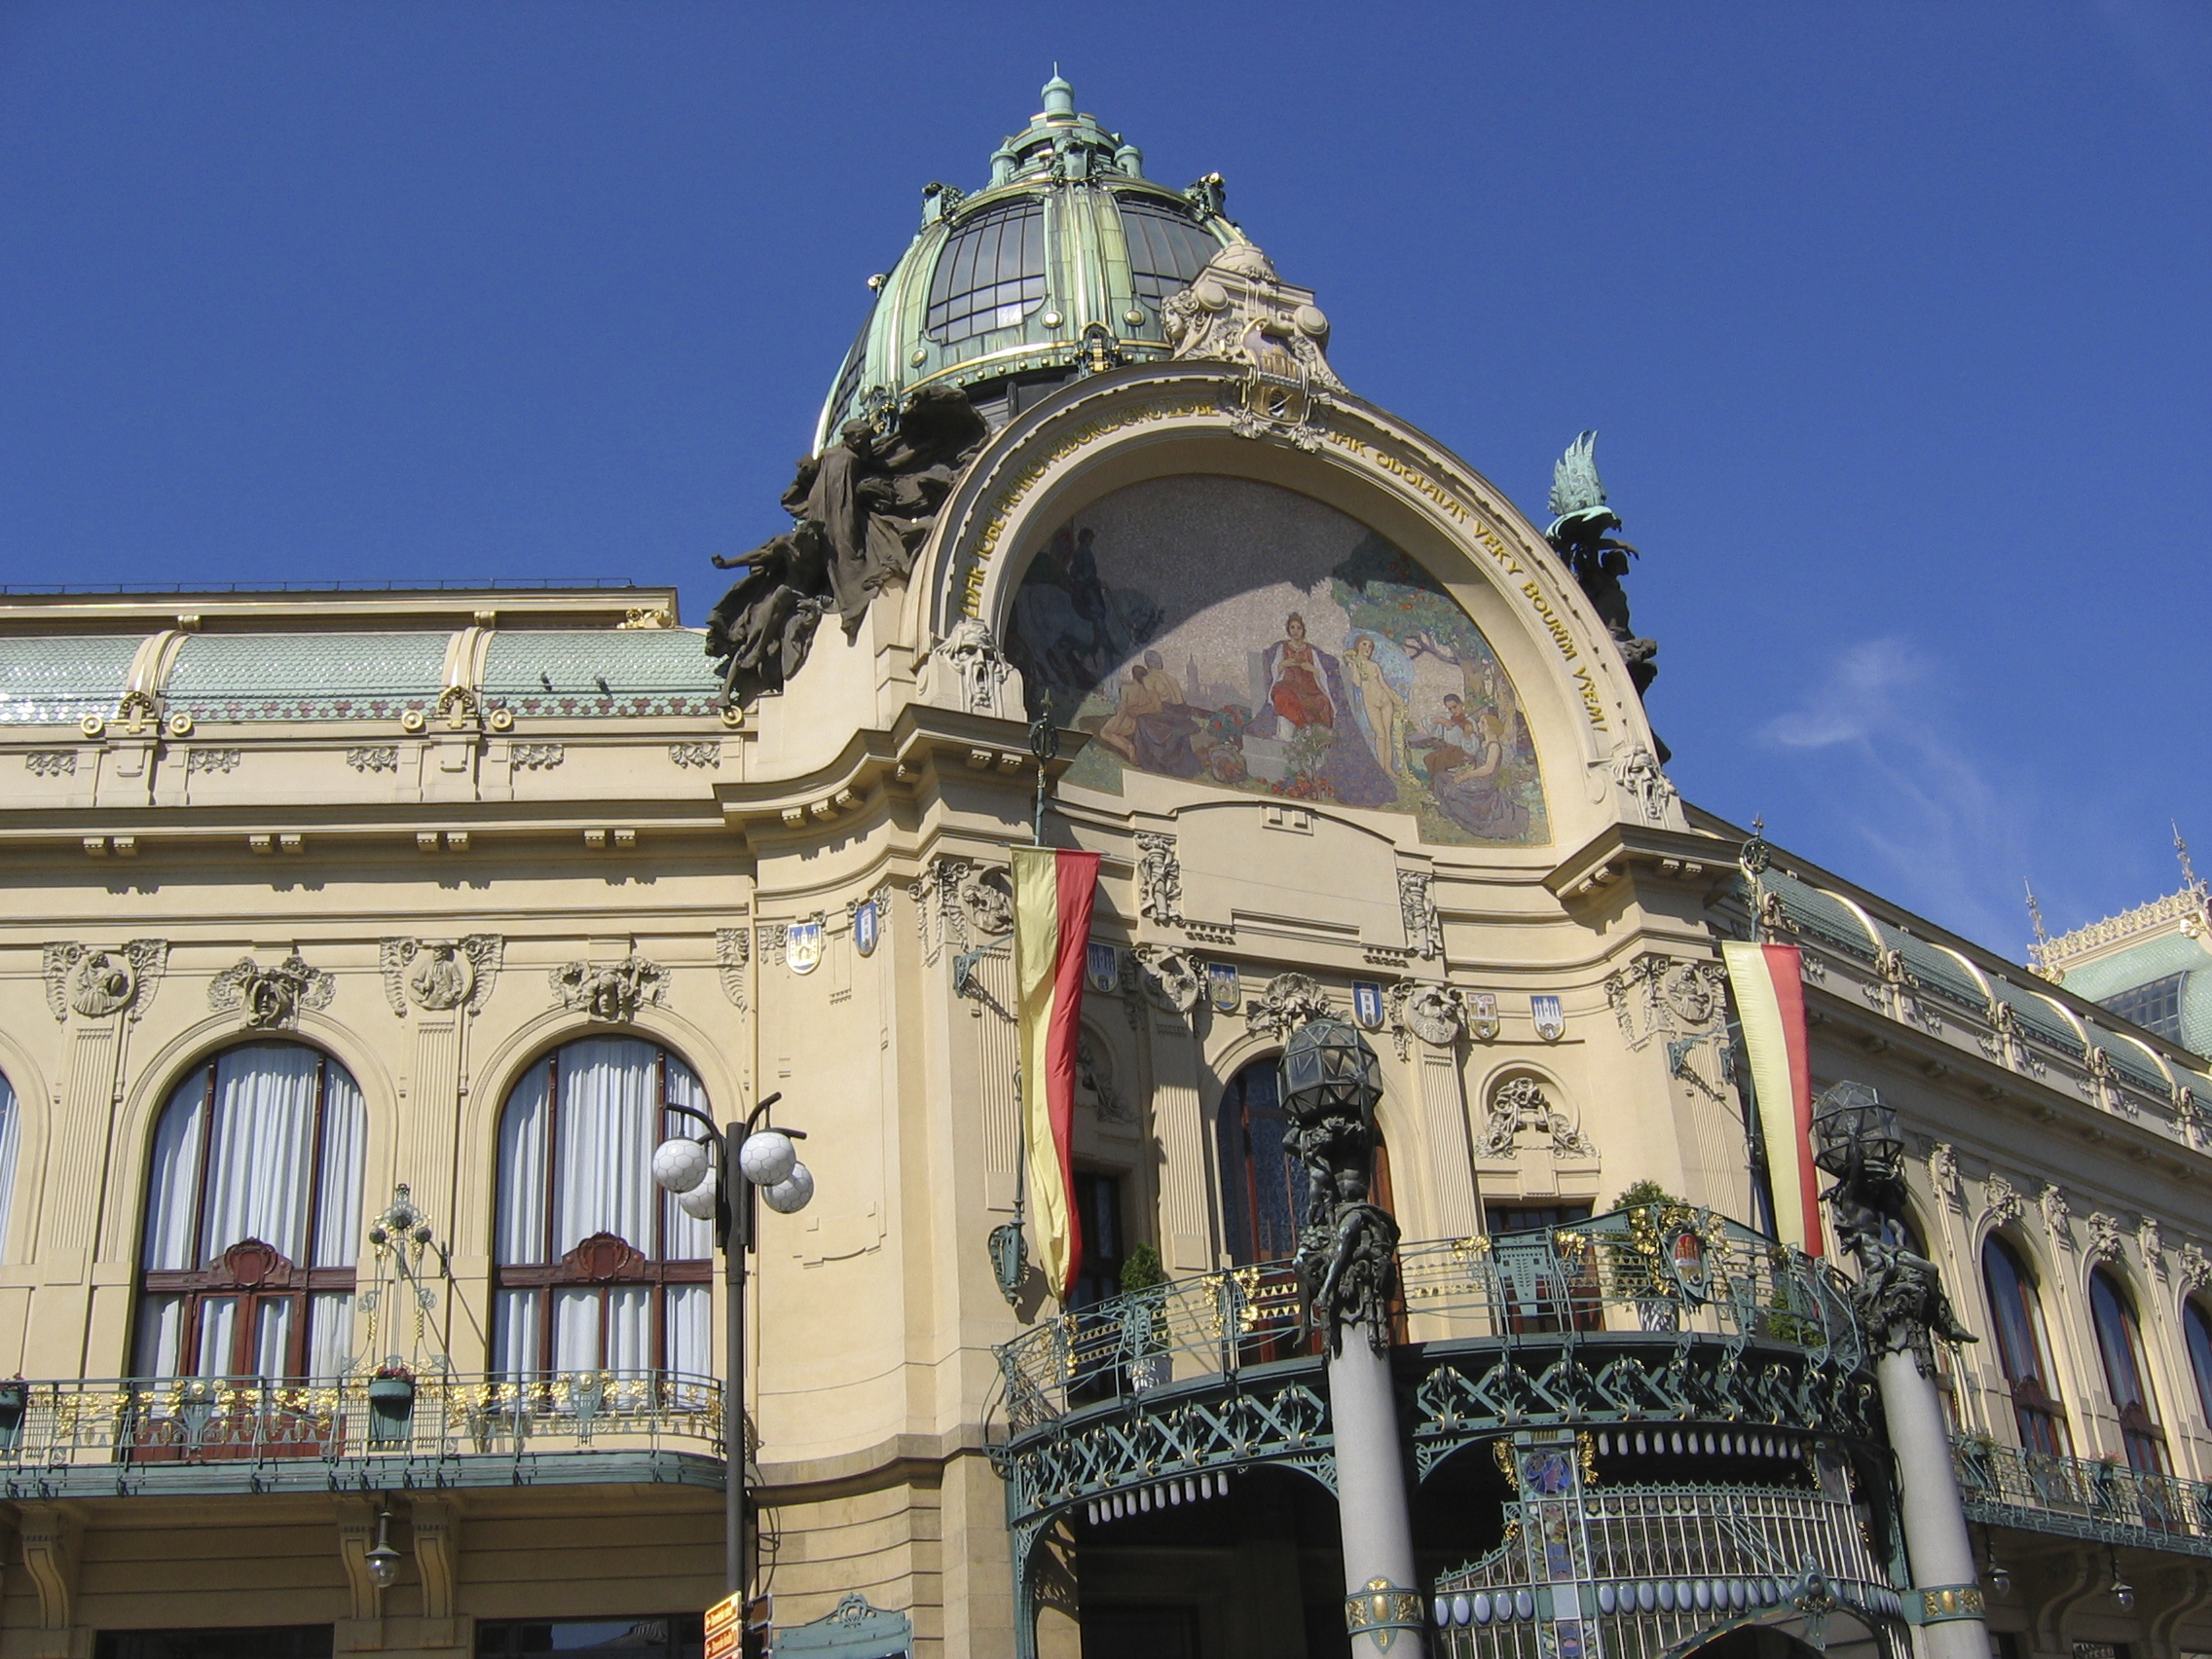 Art Nouveau is vibrant, encouraging, optimistic and elegant. Get to know it better in one of Prague's most famous Art Nouveau buildings.